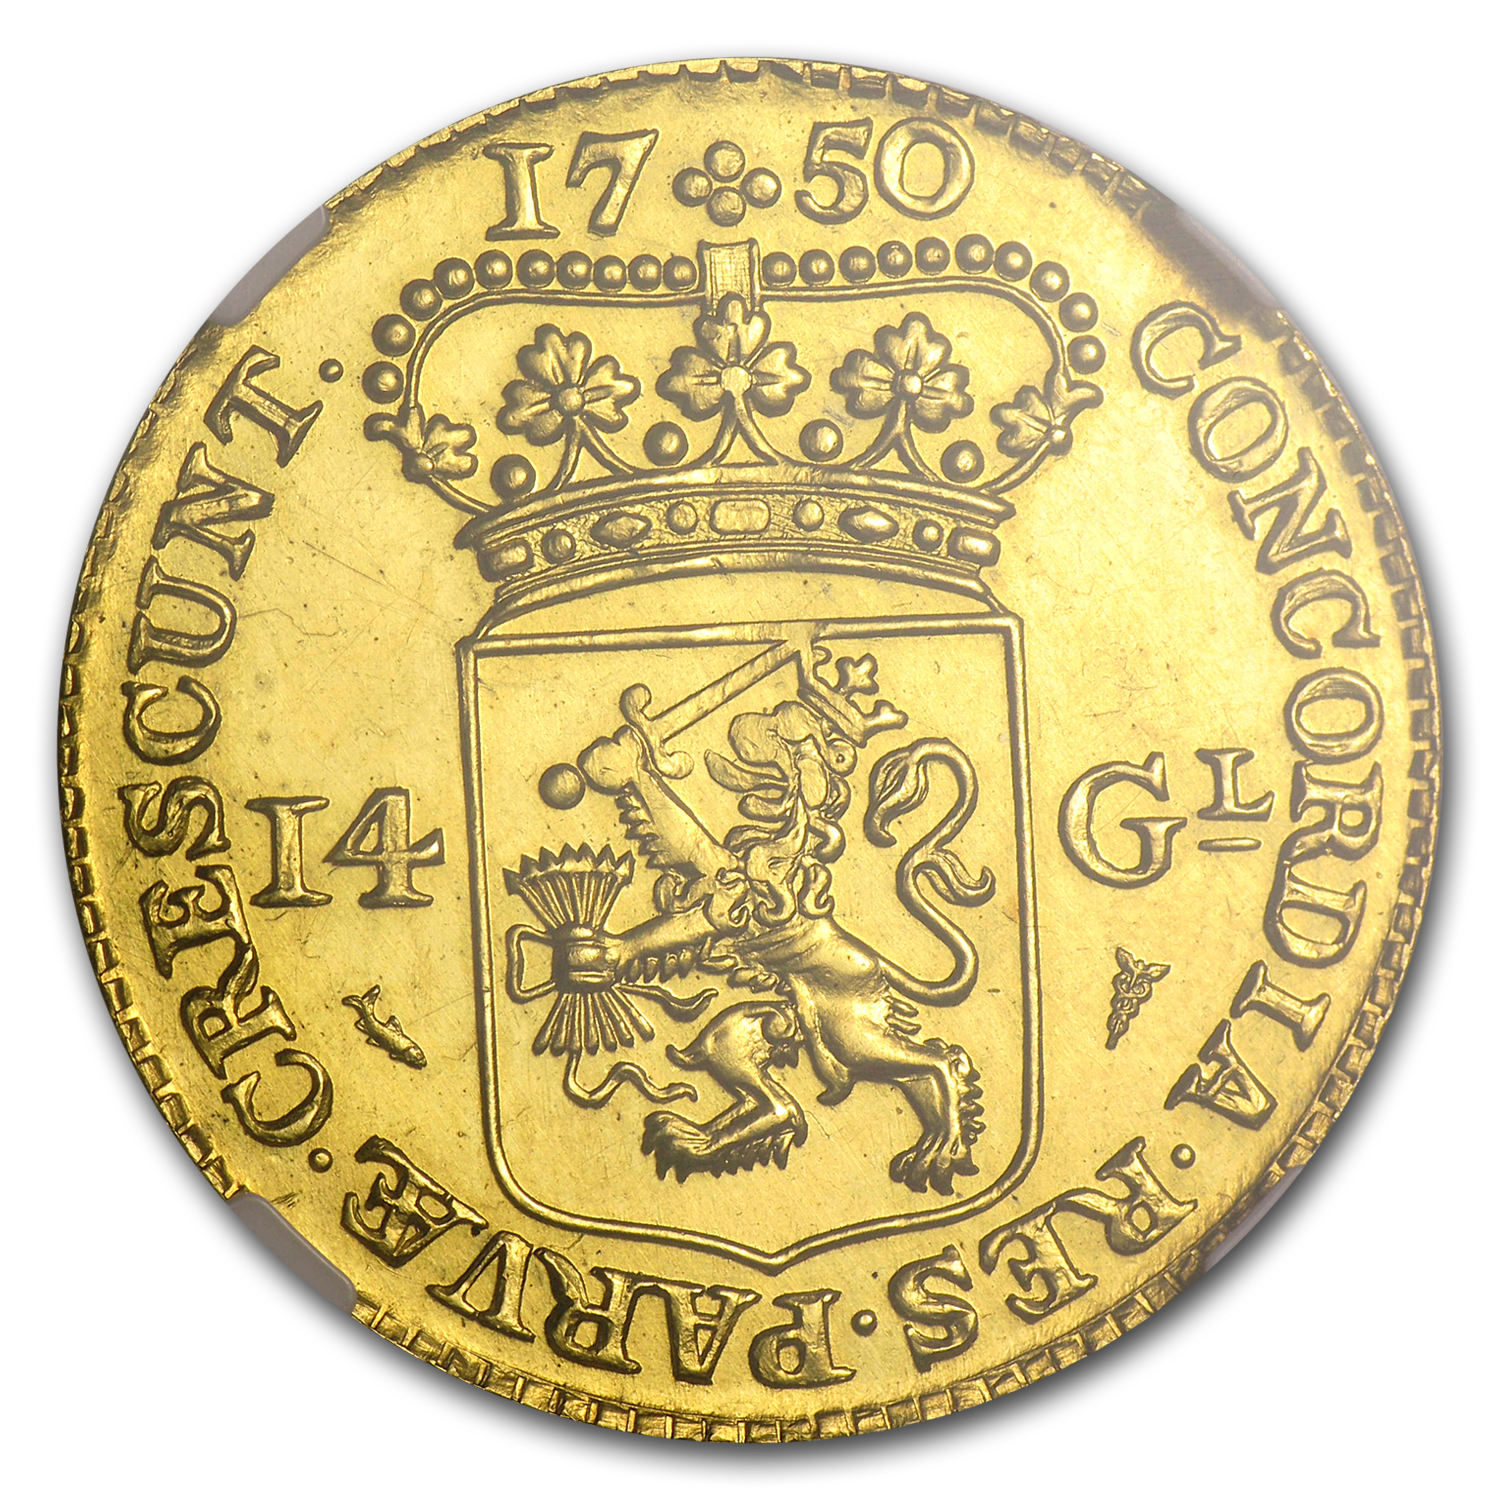 Holland 1750 14 Gulden Gold (1960 Restrike) NGC MS-65